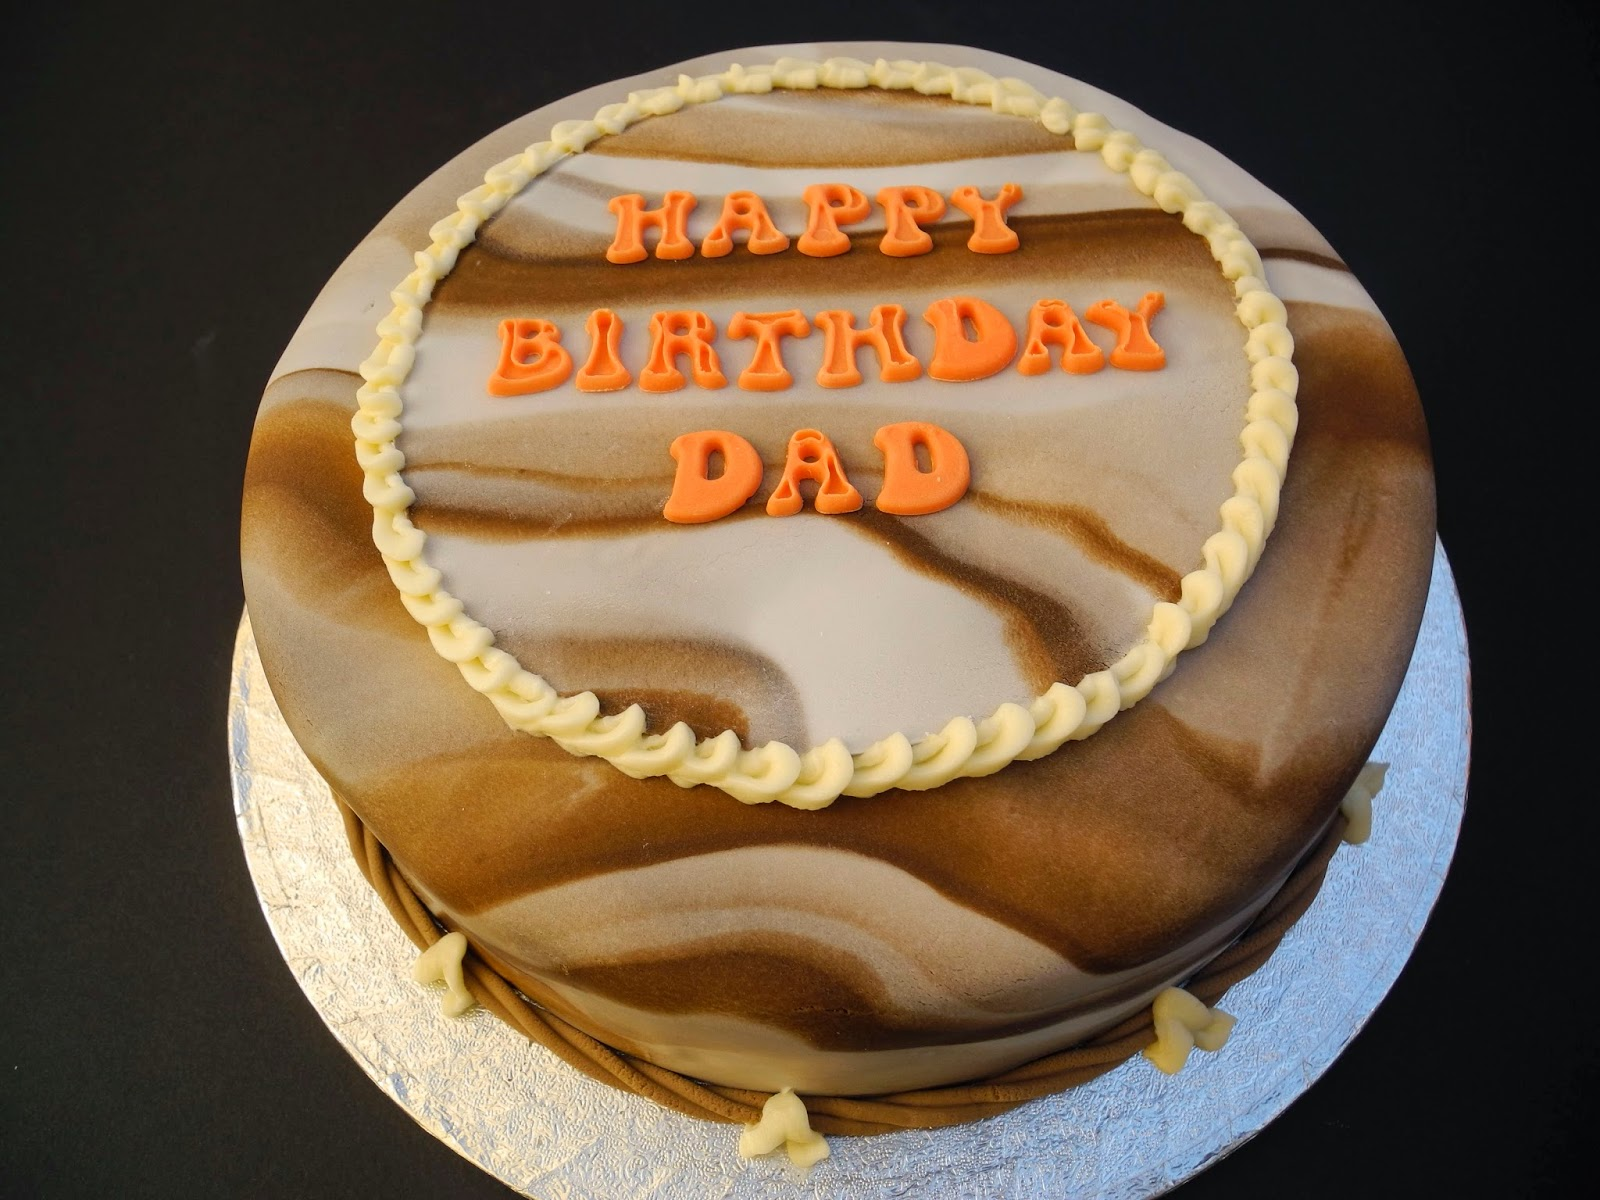 Simple Wallpaper Birthday Father - Dad-Marbled-Chocolate-Birthday-Cake  Best Photo Reference_466188.jpg